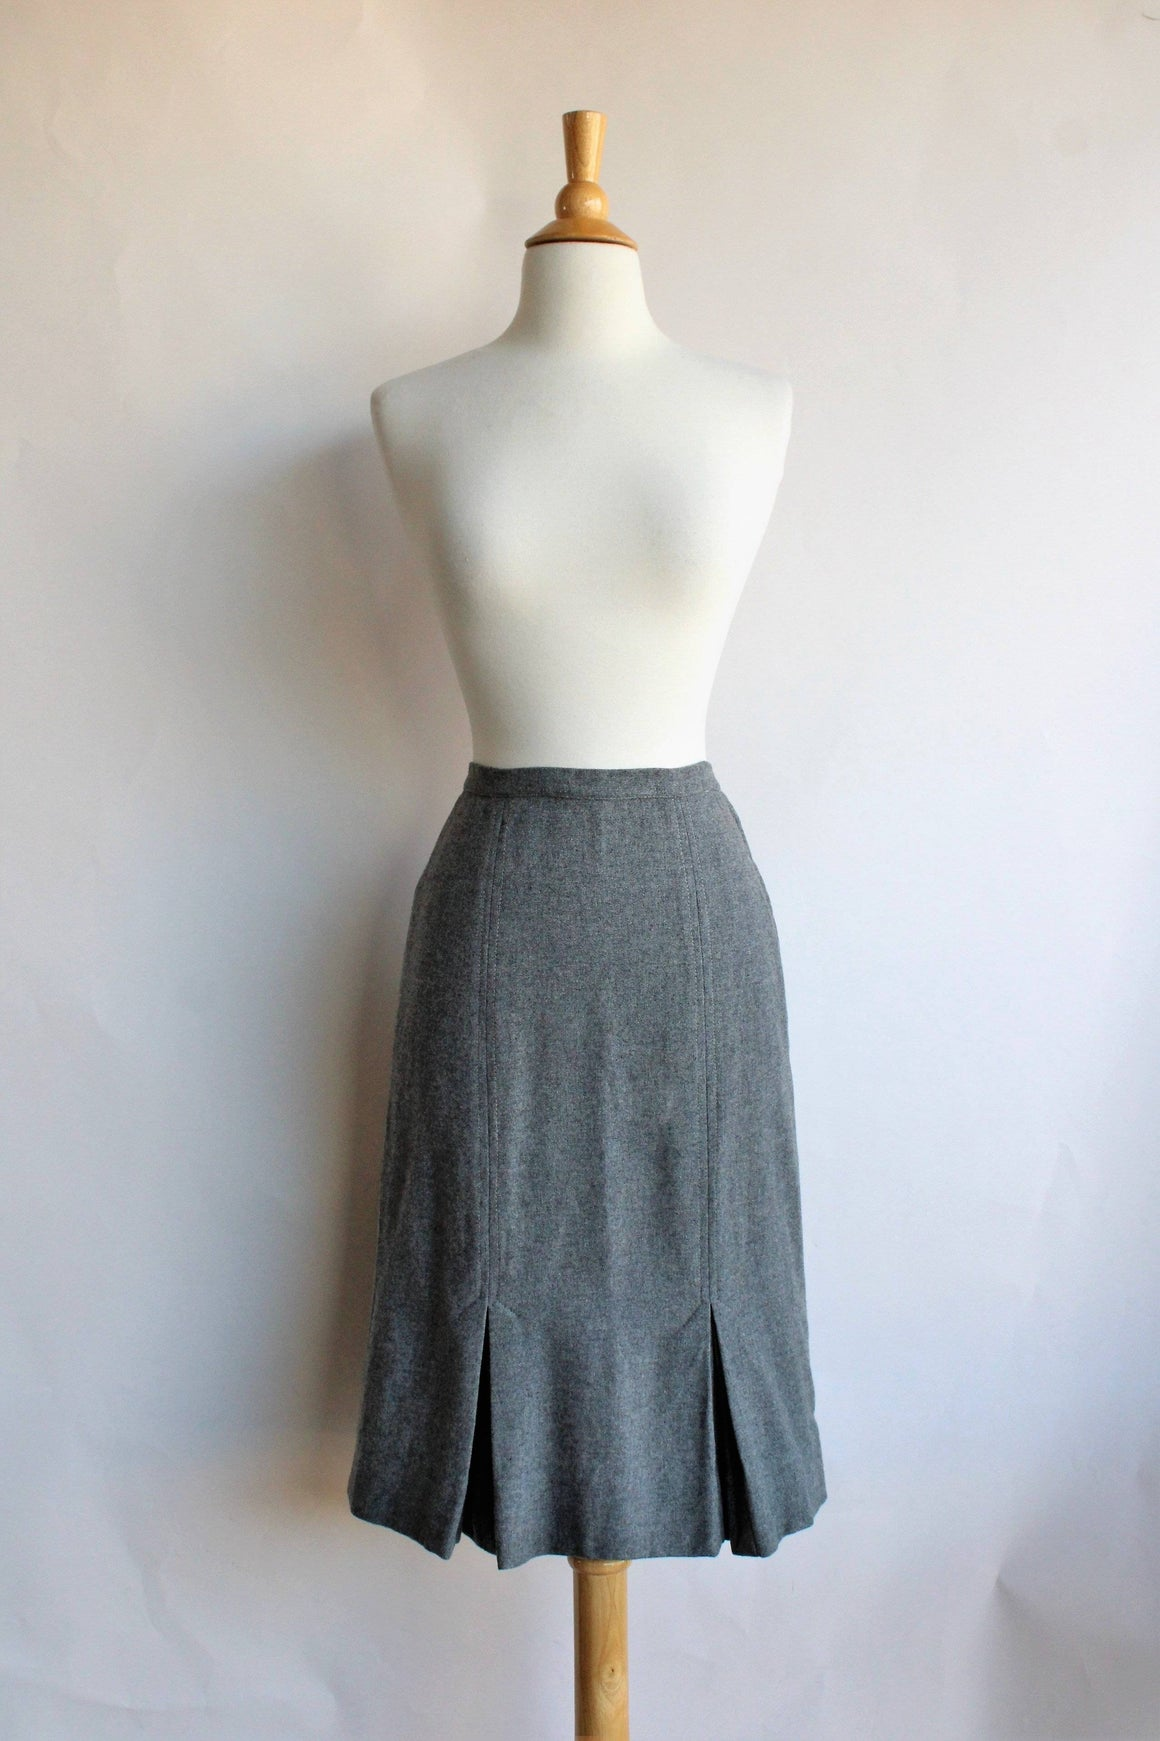 Vintage 1950s Grey Wool Skirt by Century of Boston